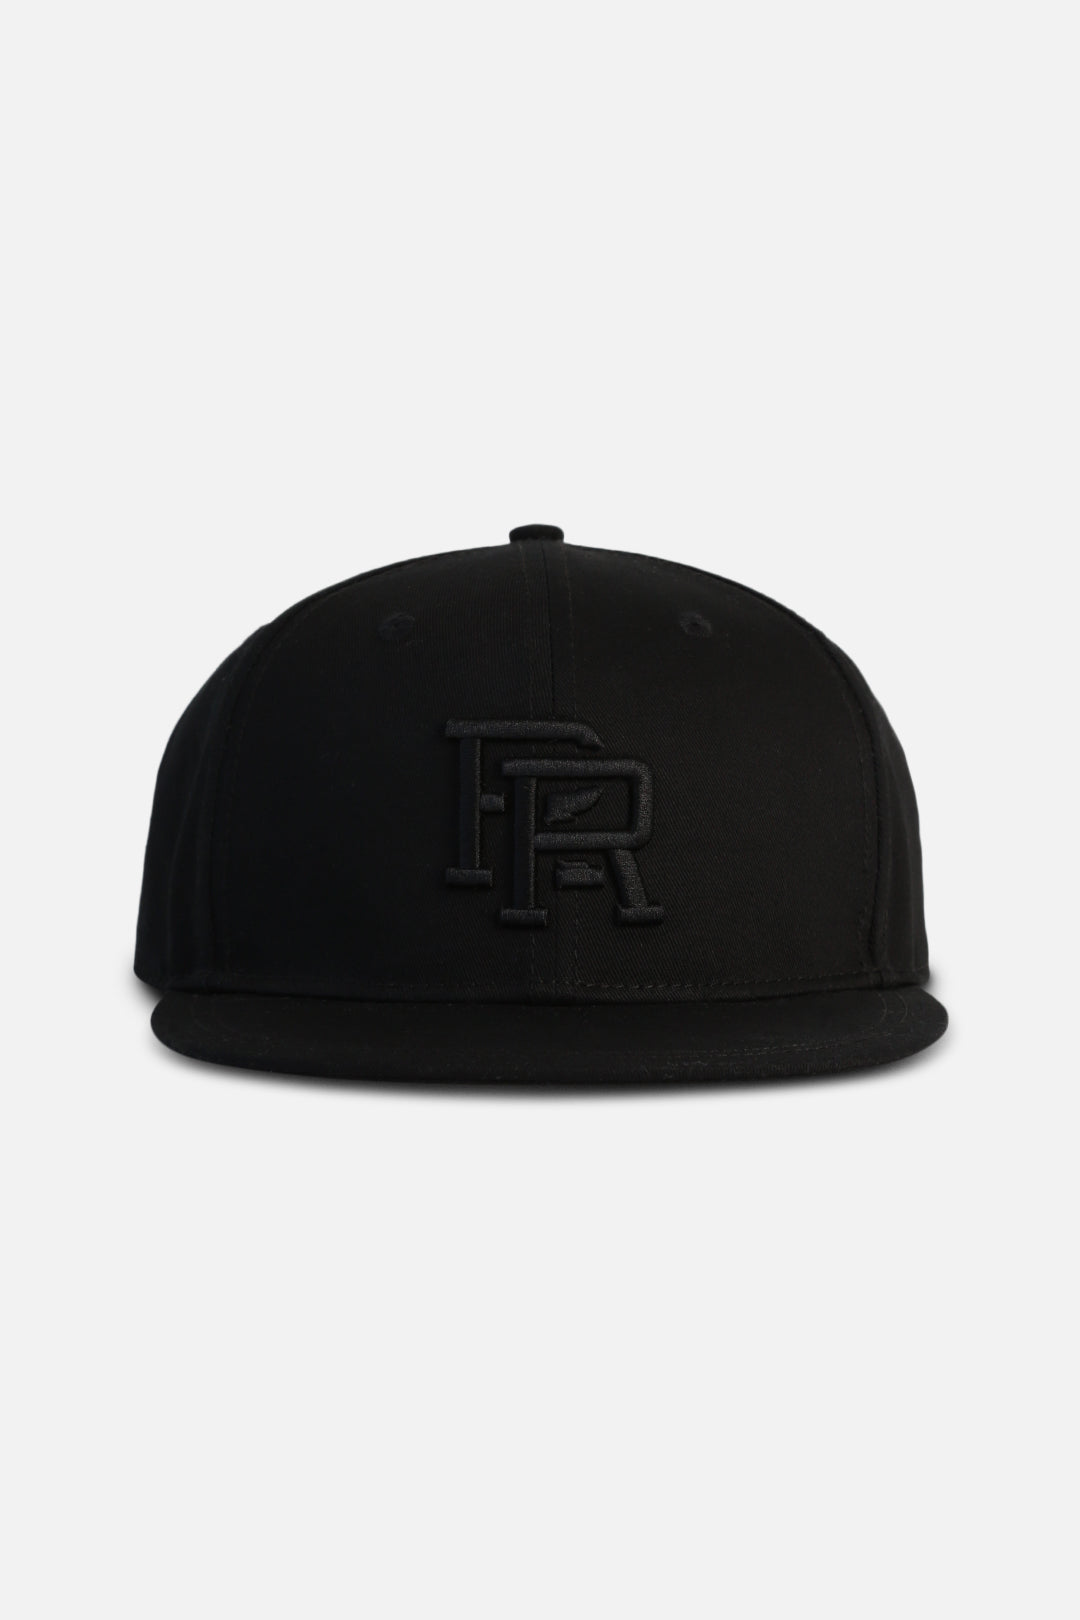 The Wycliff Snapback - Black - Roler Clothing